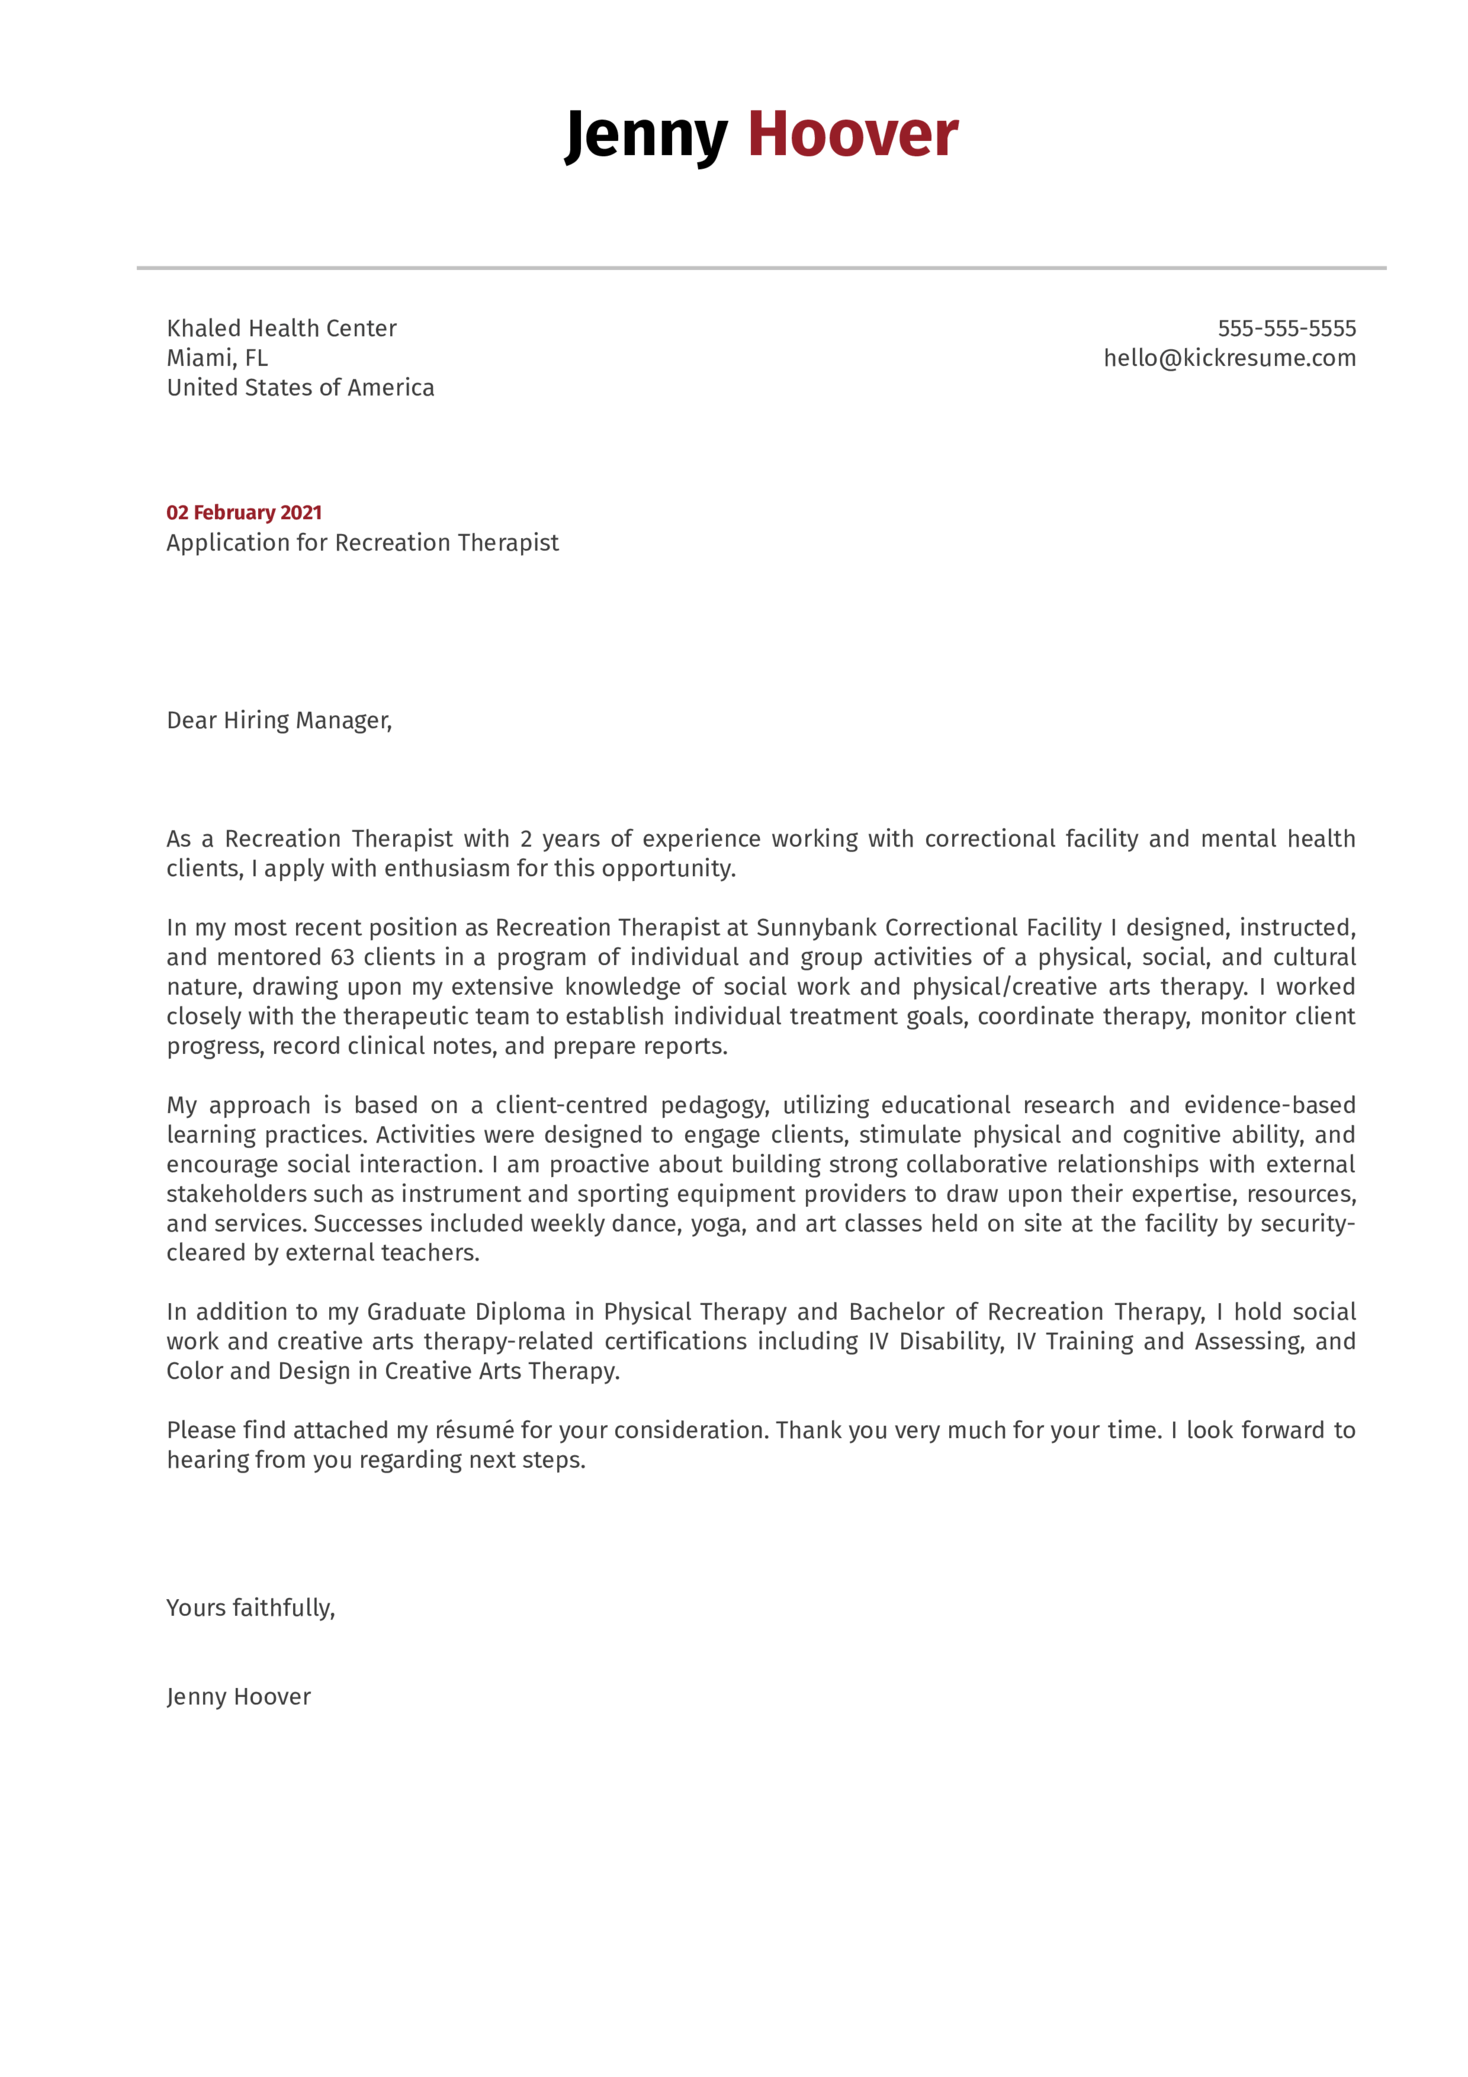 Recreation Therapist Cover Letter Example